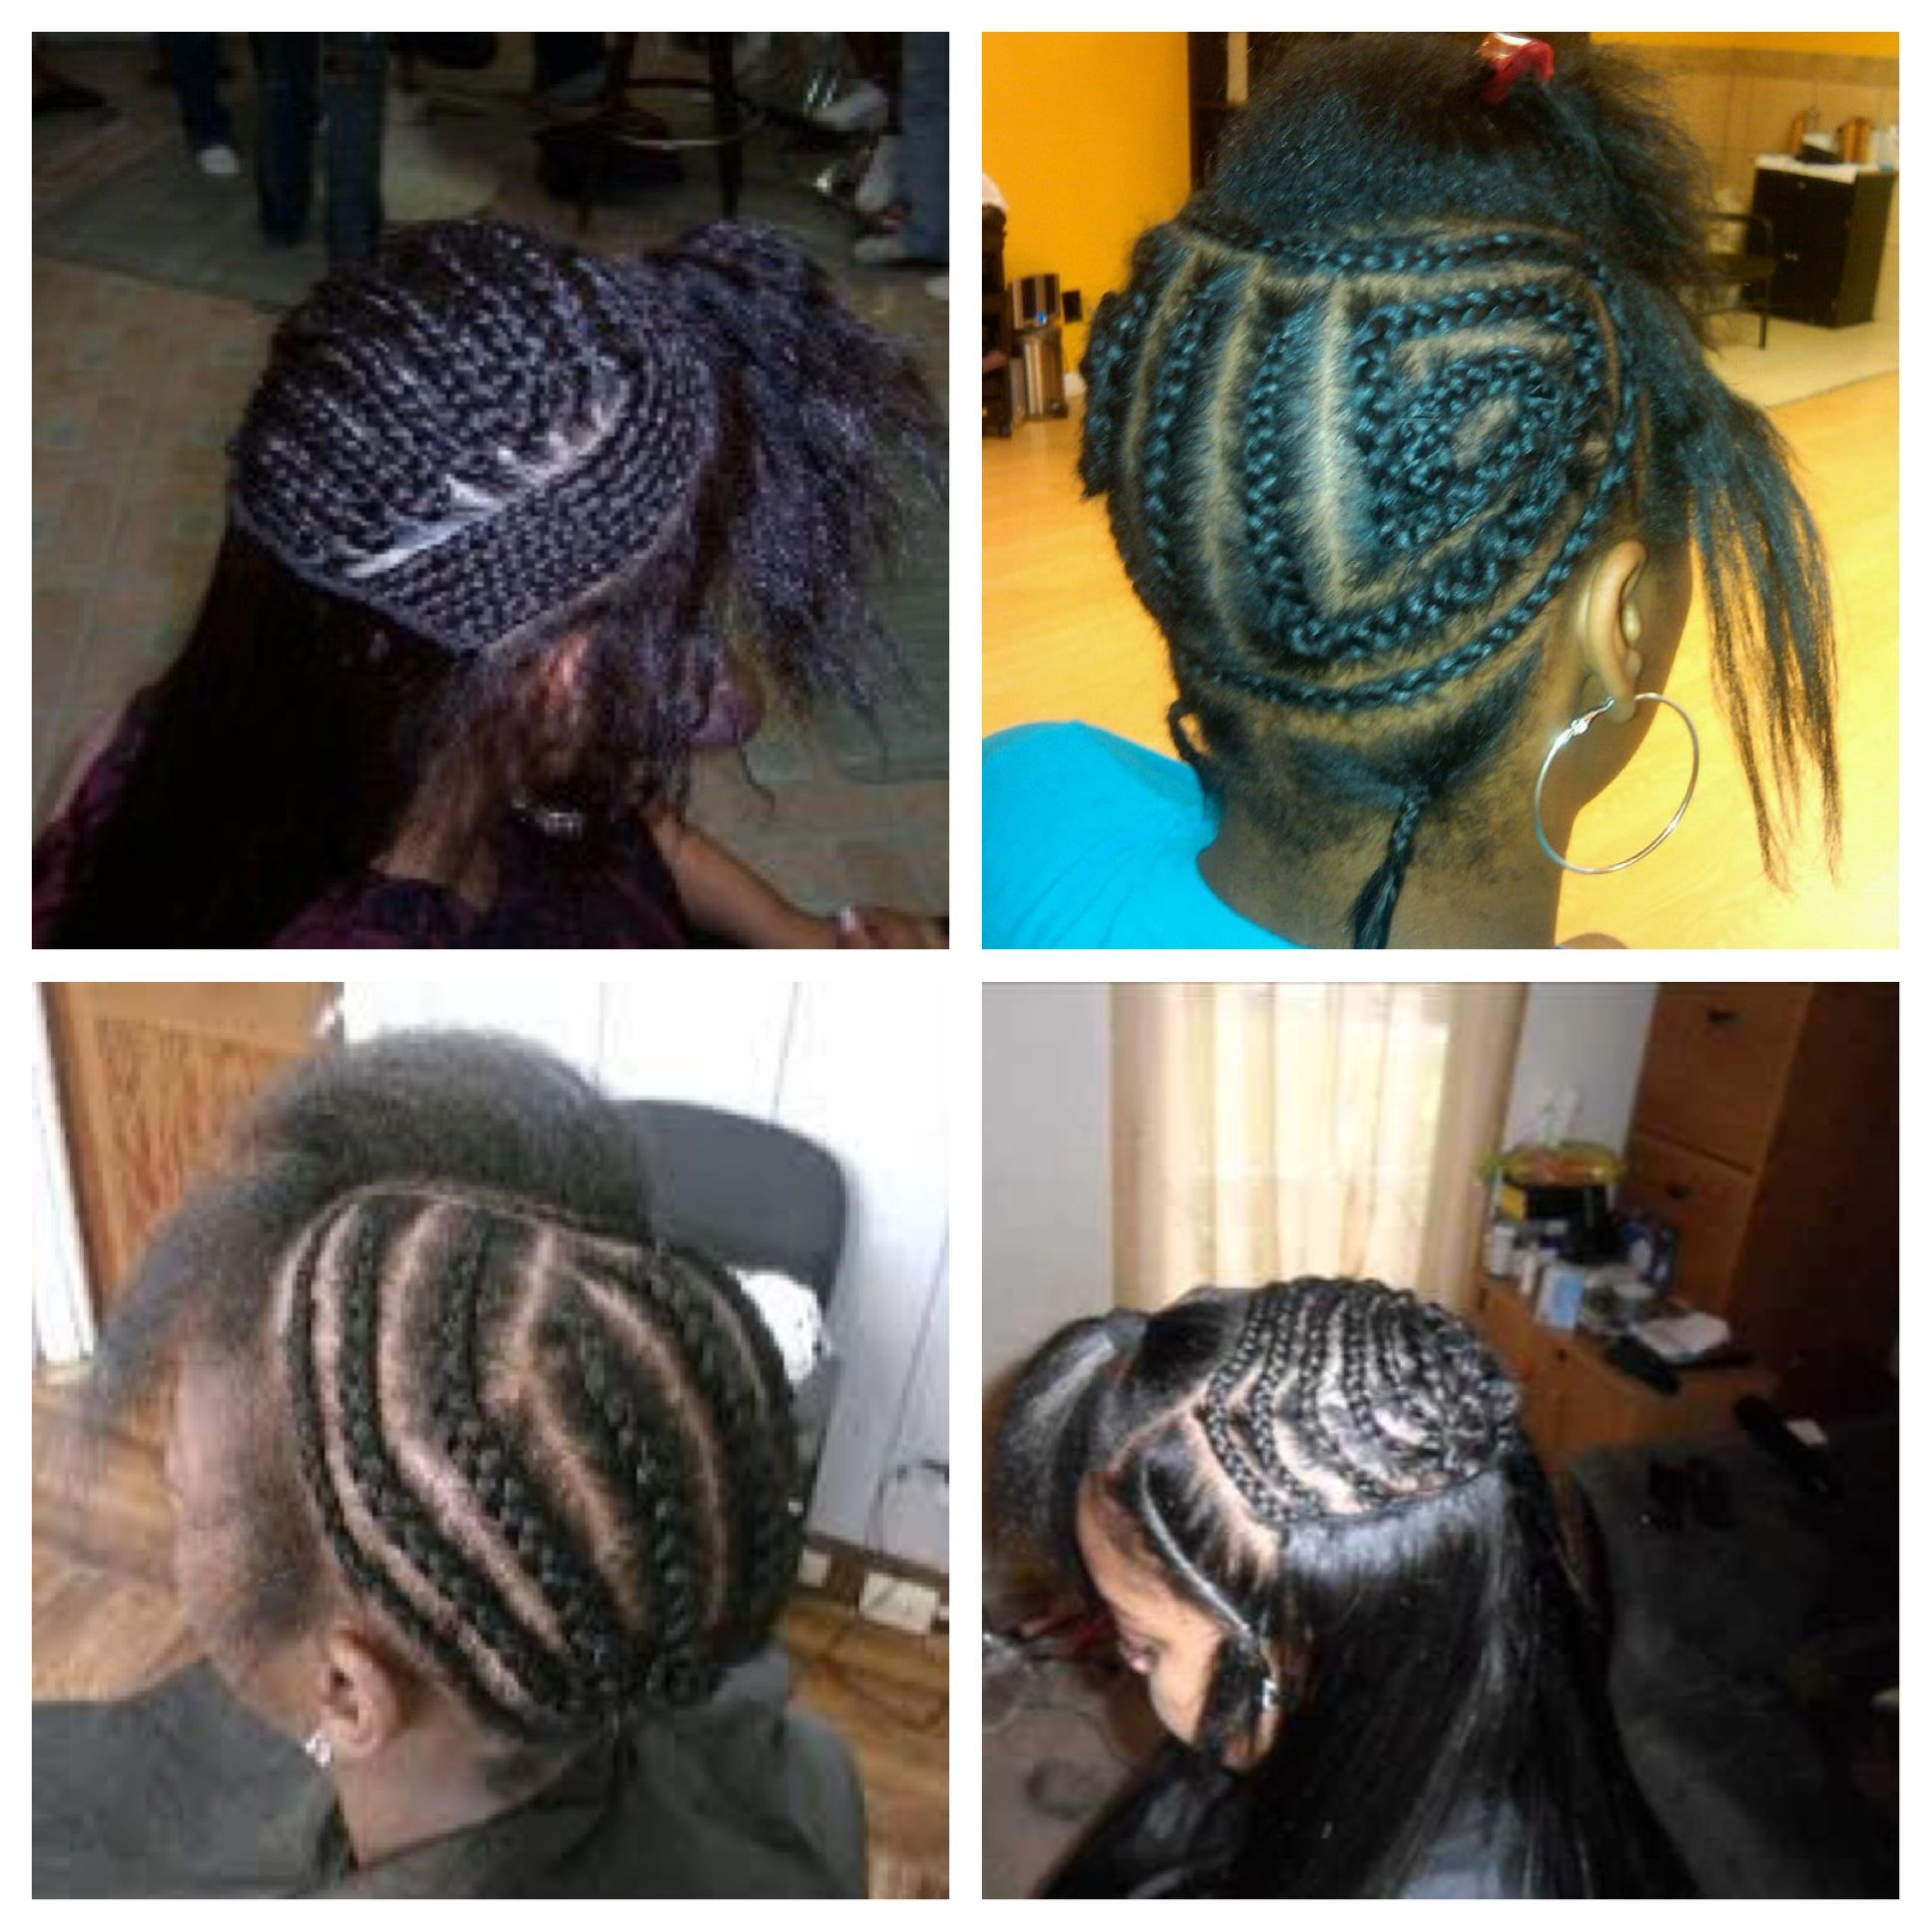 Braid patterns for sew ins i found online extenciones flawless braid patterns for sew ins i found online jeuxipadfo Gallery